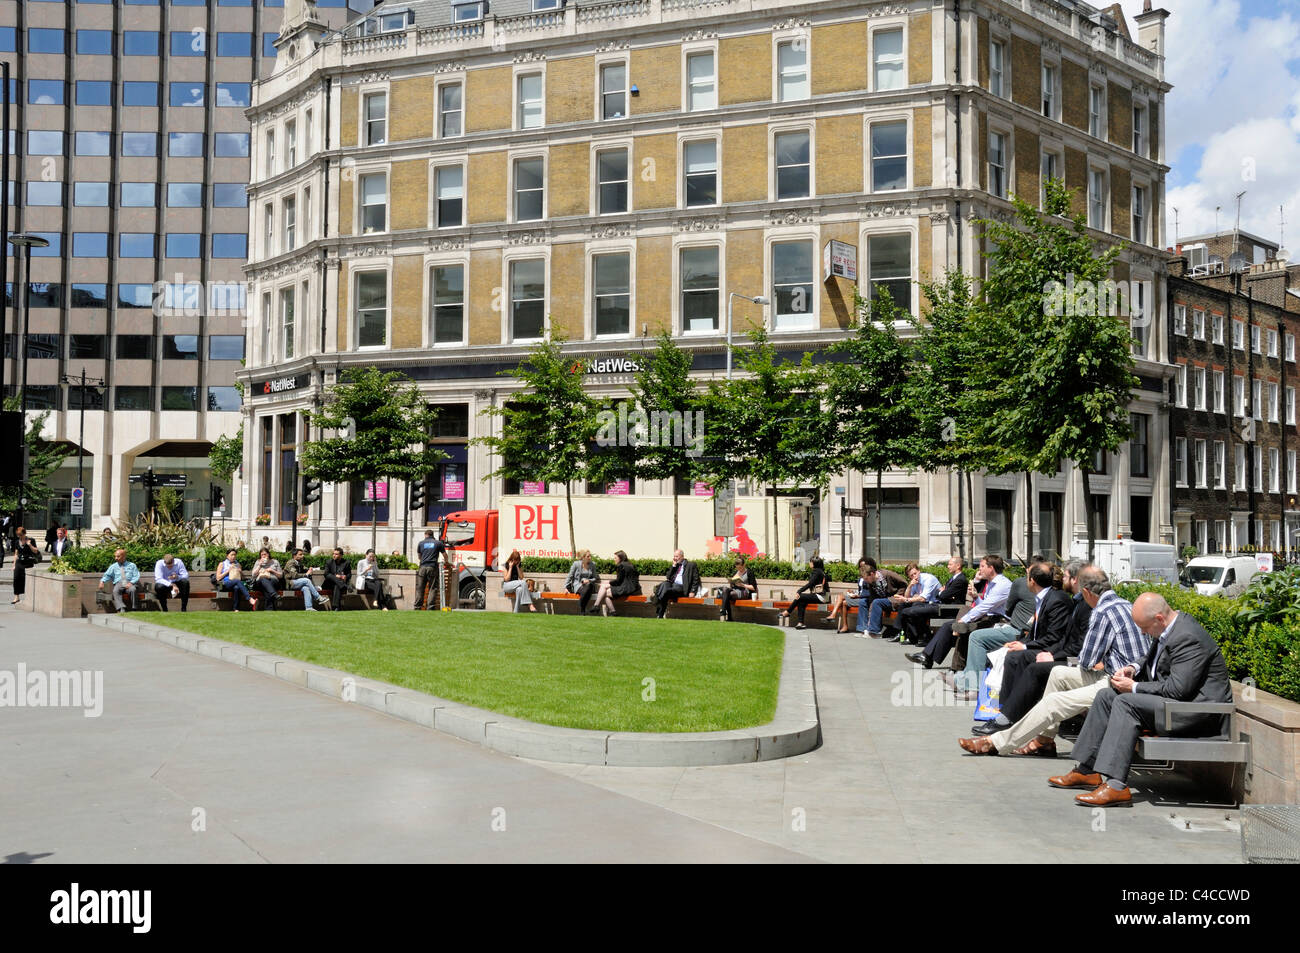 People enjoying the sunshine in a new, modern triangle shaped public seating area or open space Holborn Circus London - Stock Image